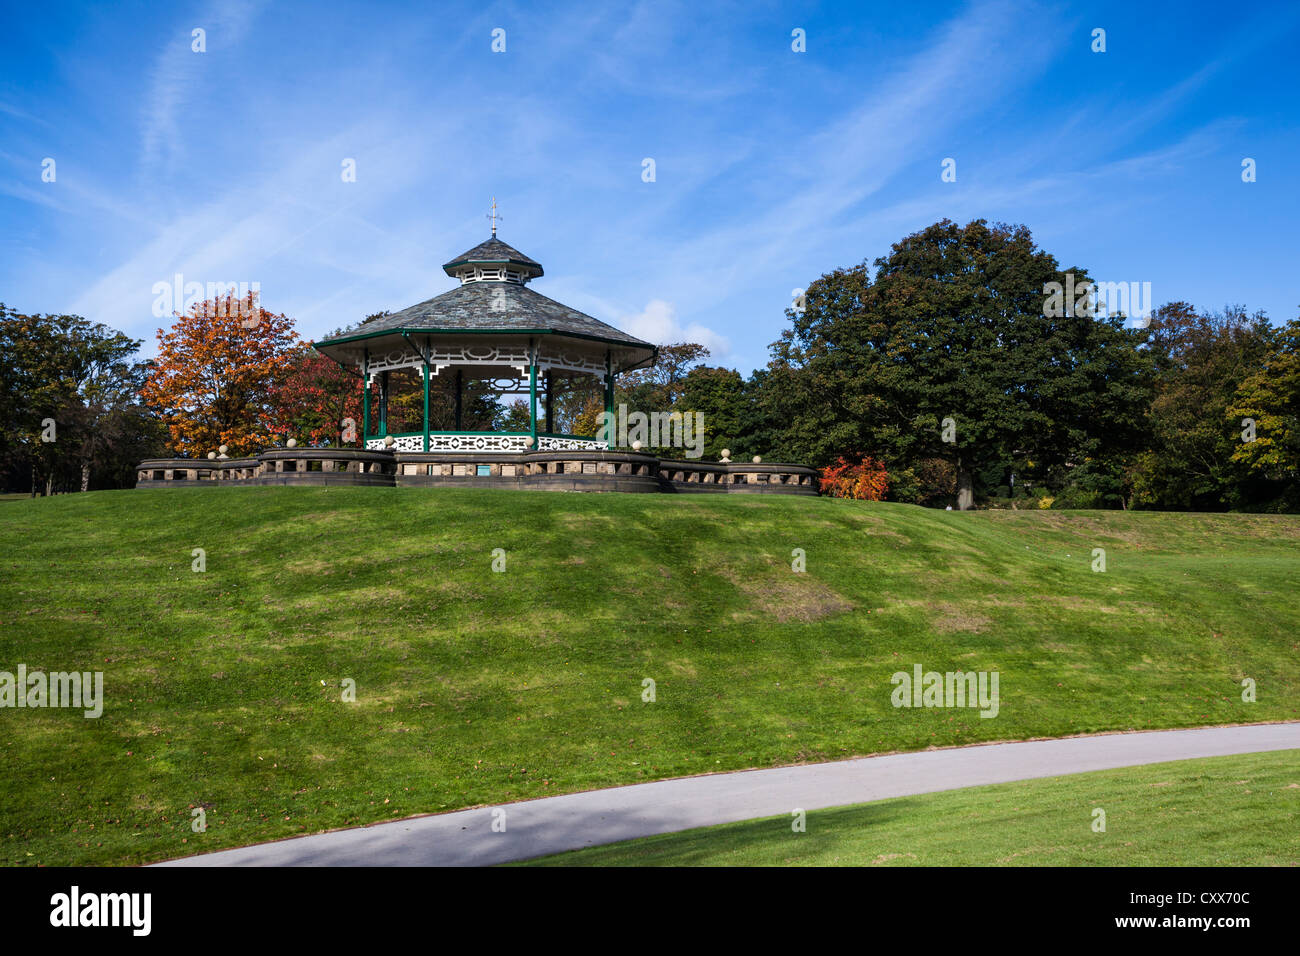 The Bandstand at Greenhead Park Huddersfield - Stock Image